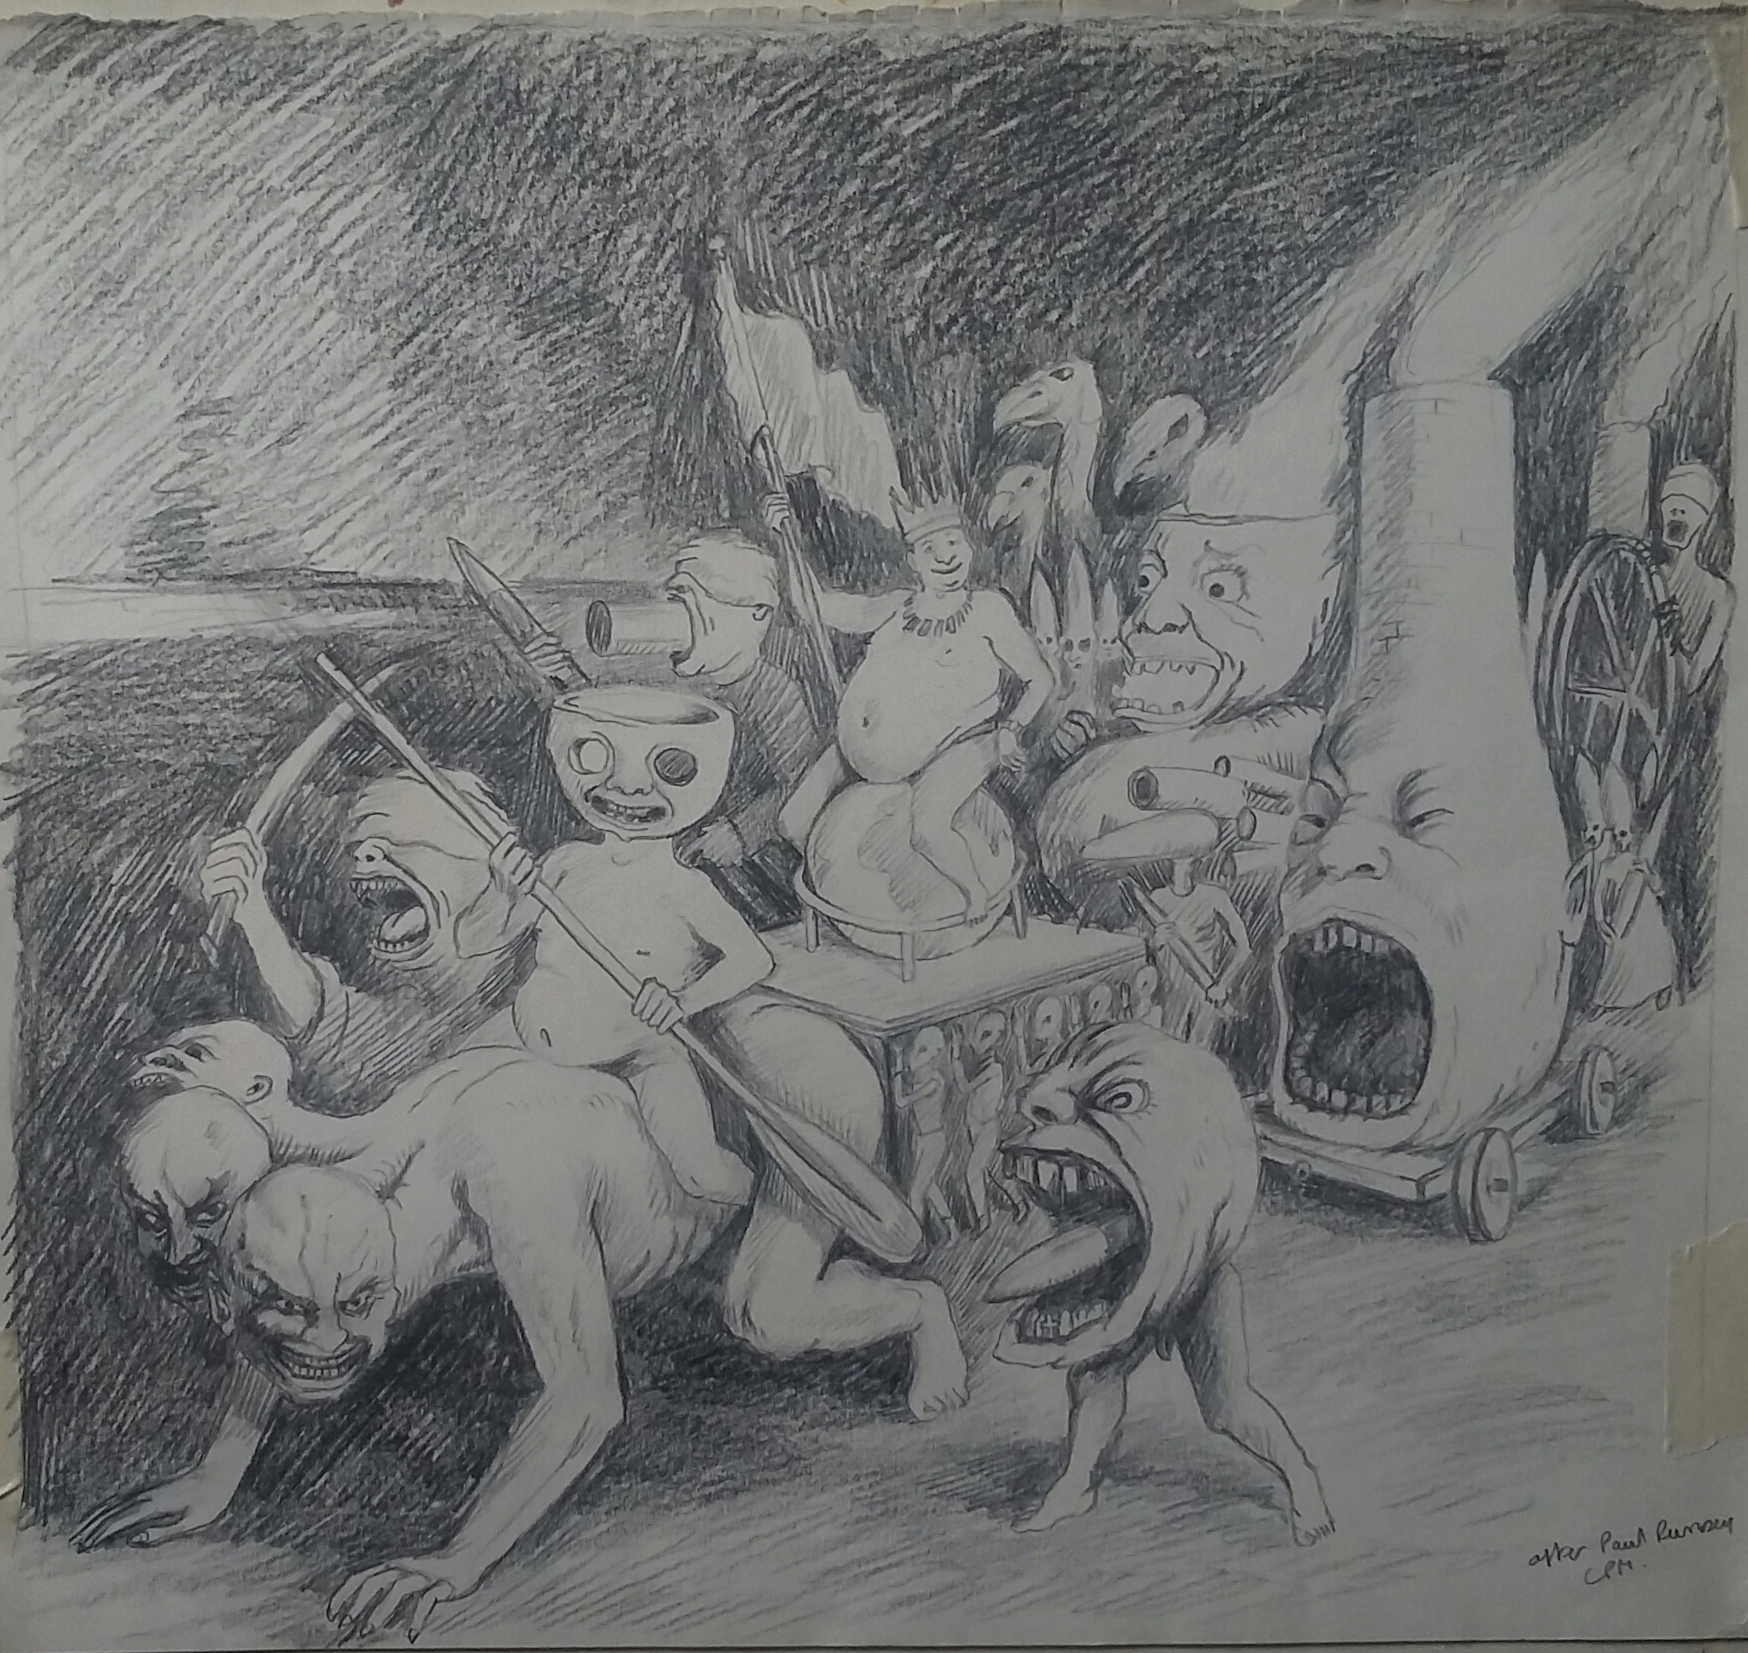 Paul Rumsey - Folly copy by me